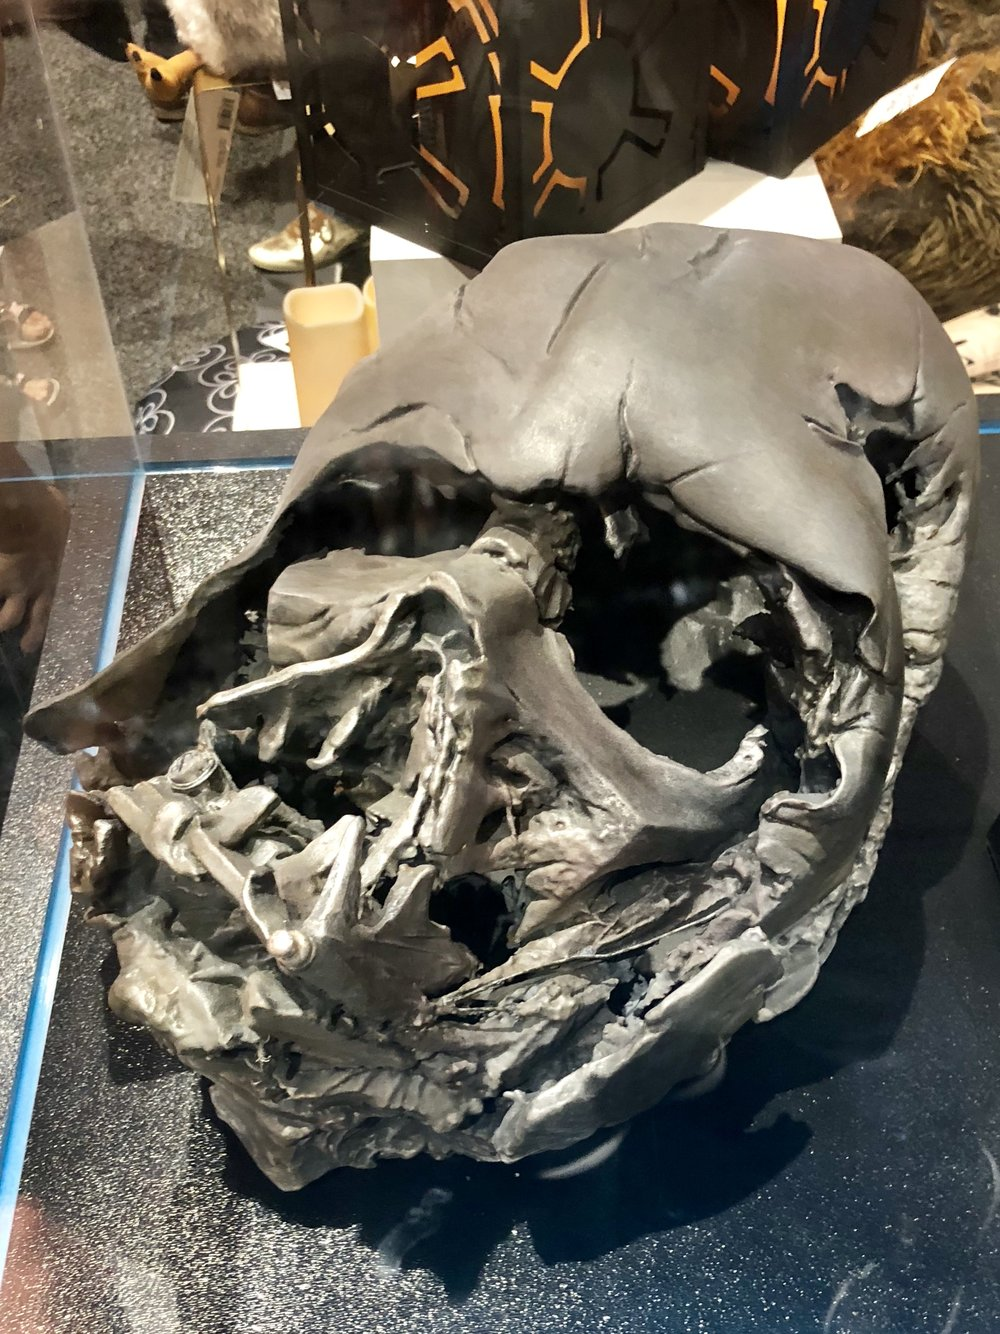 Melted Darth Vader mask from  The Force Awakens.